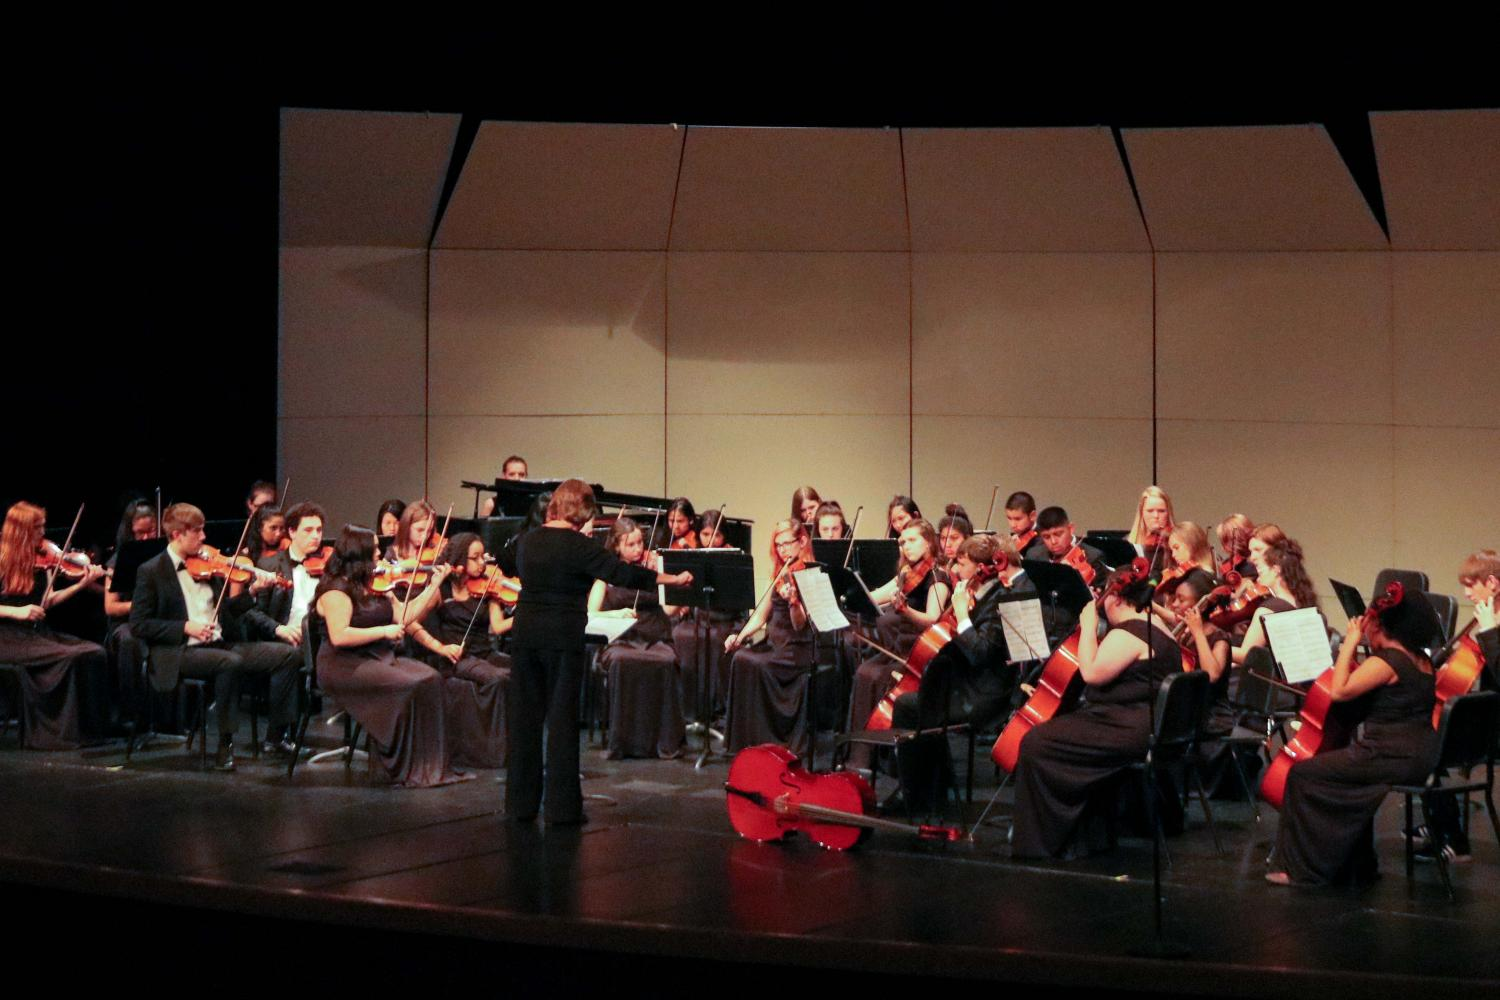 All of the Concert Orchestra